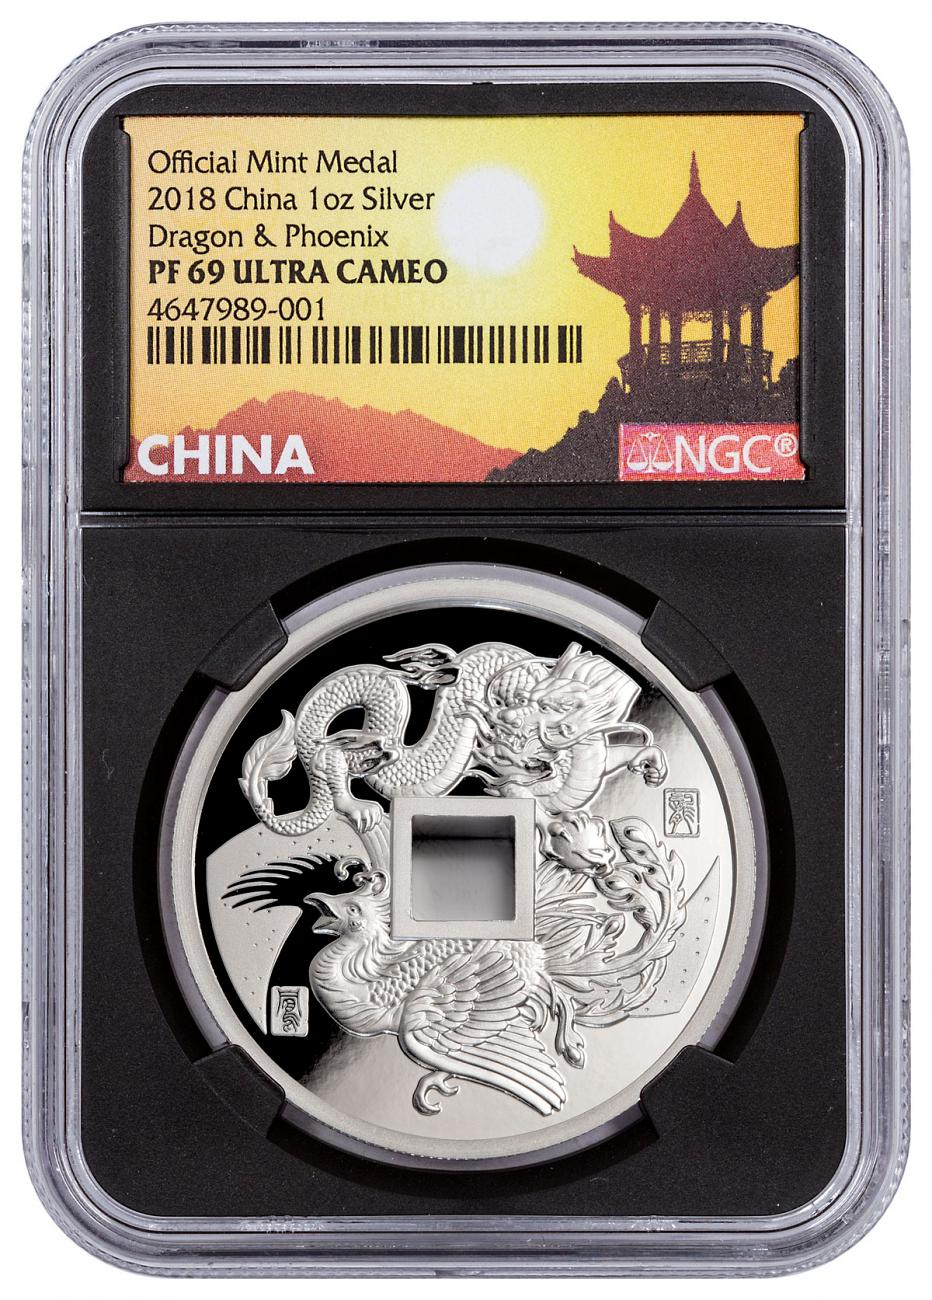 2018 China Dragon & Phoenix 1 oz Silver Proof Medal NGC PF69 UC Black Core Holder Exclusive Pagoda Label